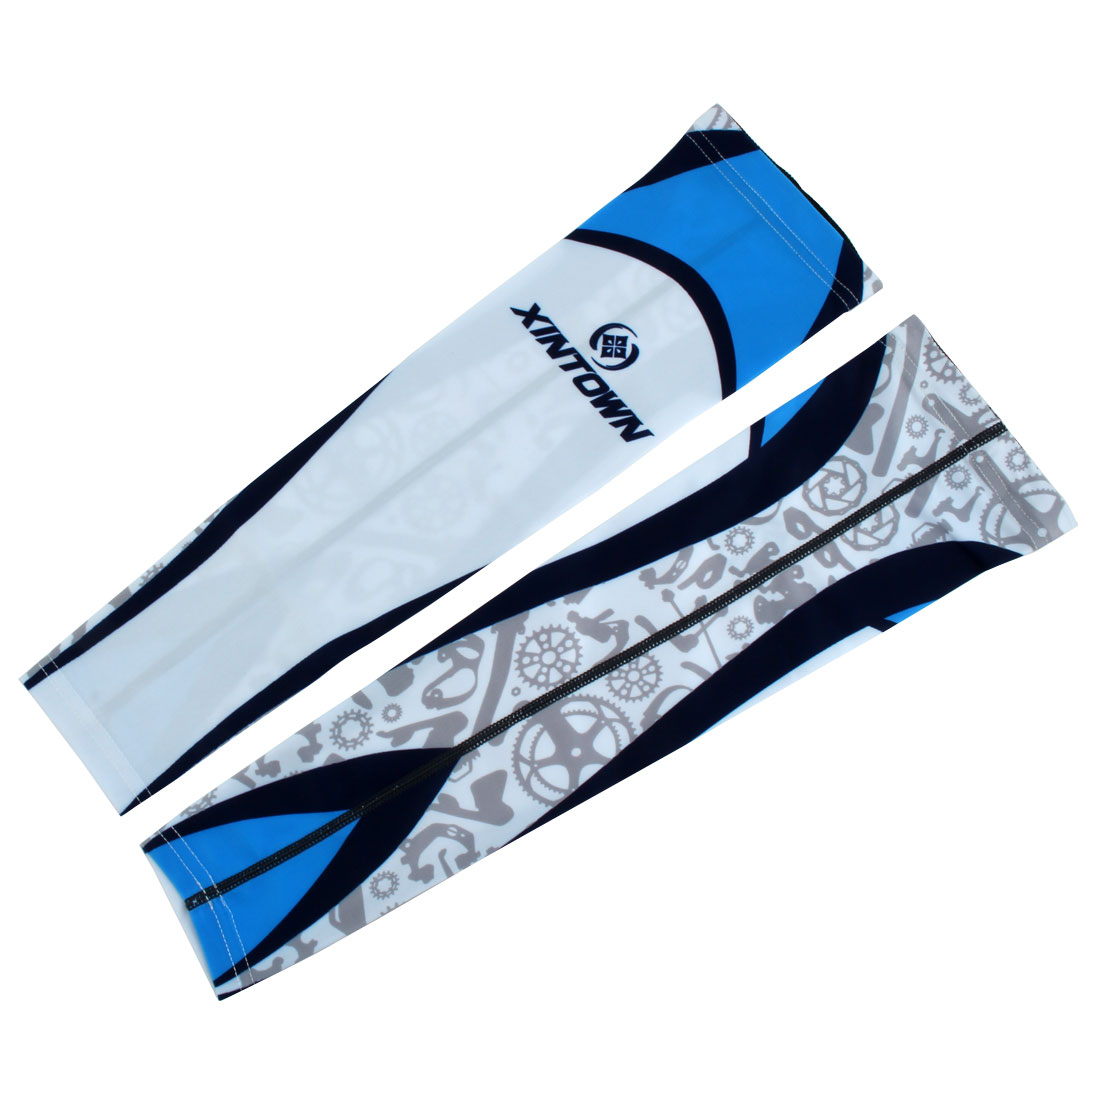 XINTOWN Authorized Unisex Cycling Football Arm Sleeves Cover Warmer #4 M Pair by Unique-Bargains